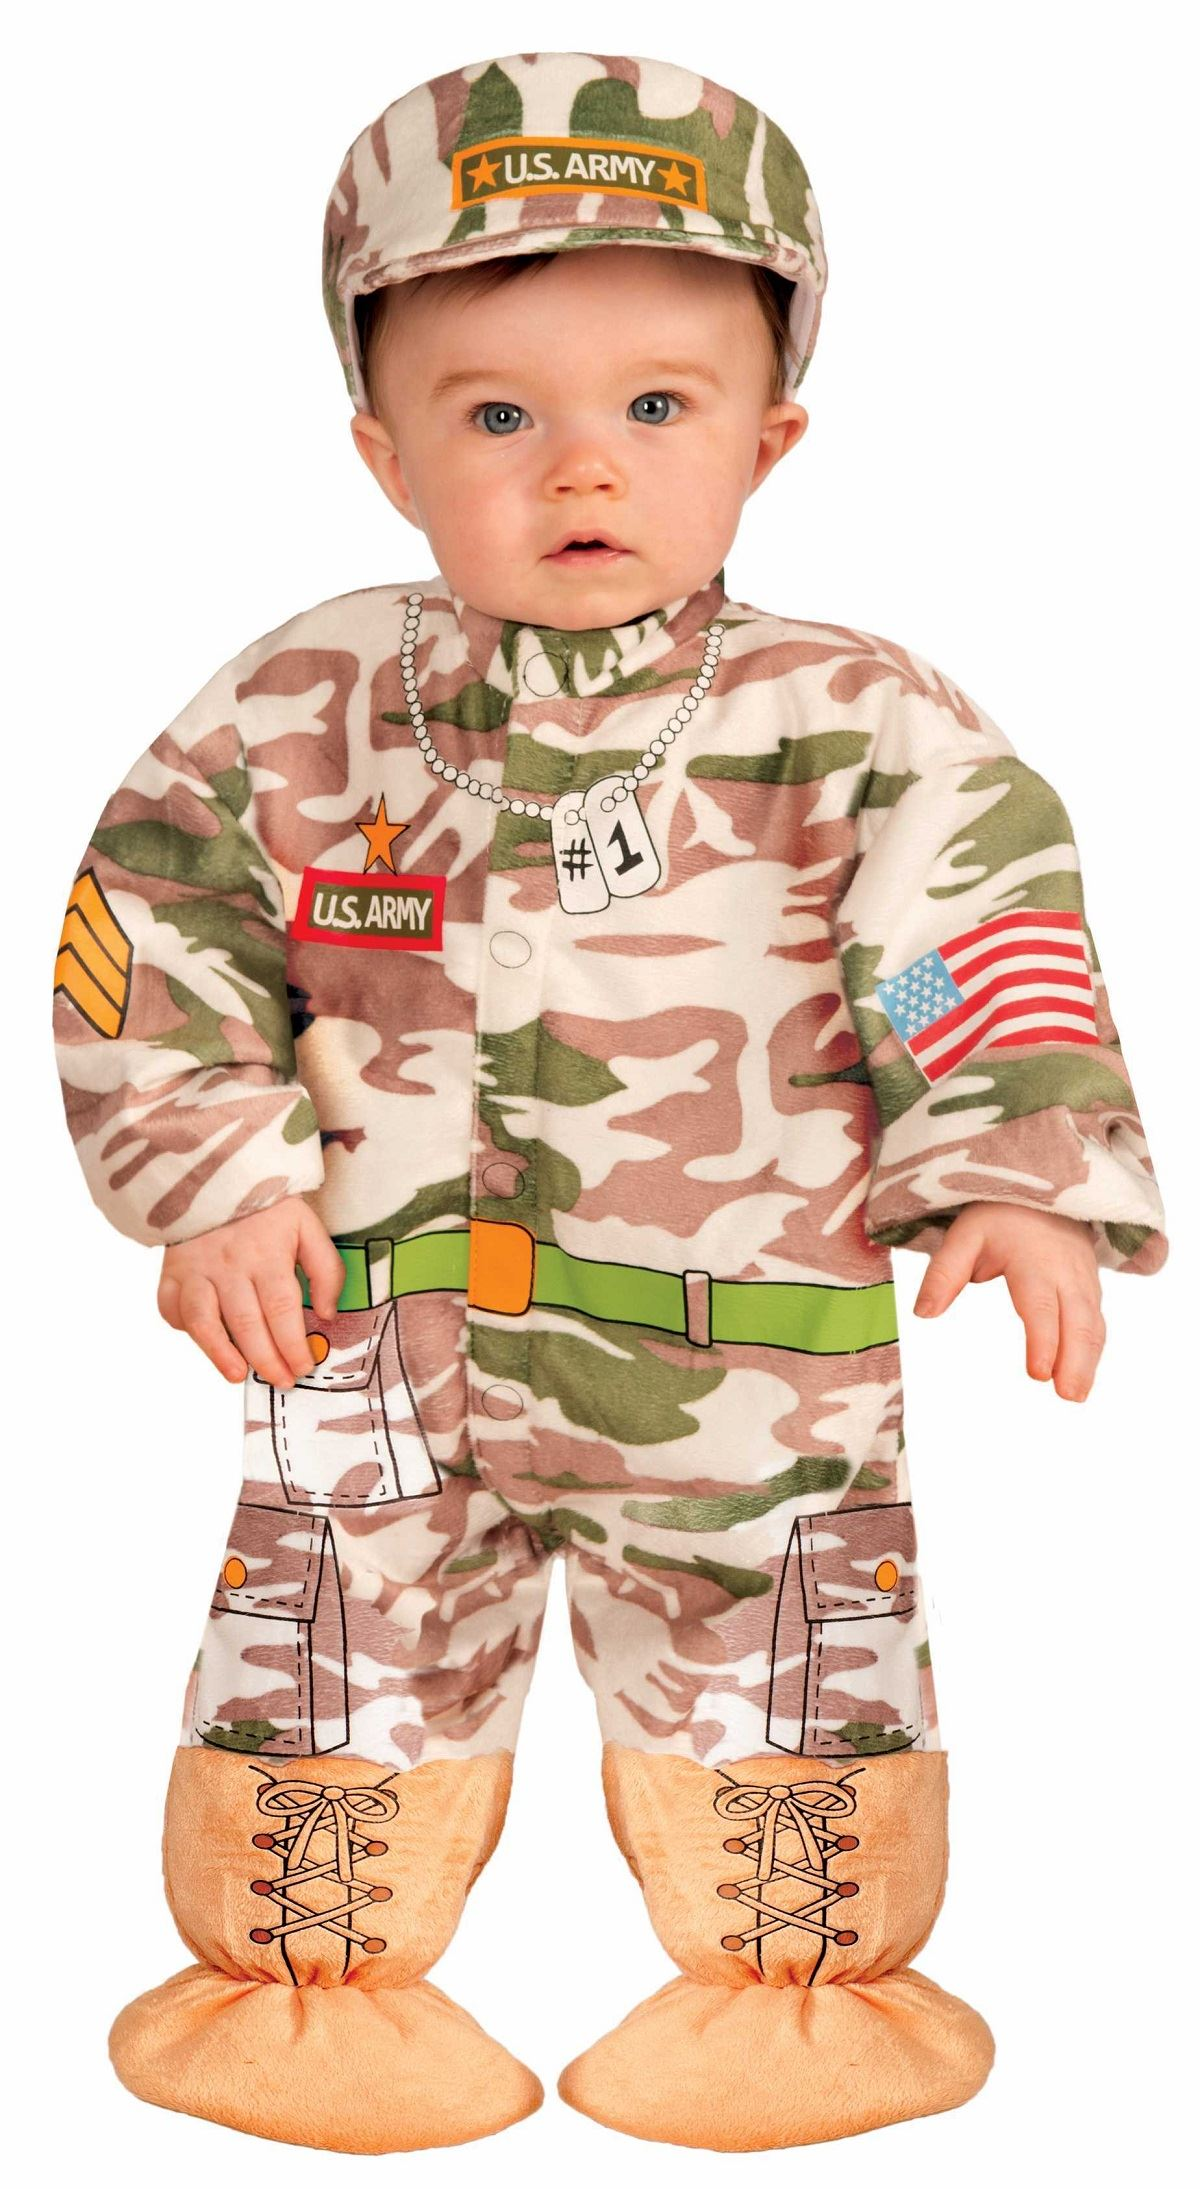 Kids Army Soldier Toddler Costume  sc 1 st  The Costume Land & Kids Army Soldier Toddler Costume | $15.99 | The Costume Land